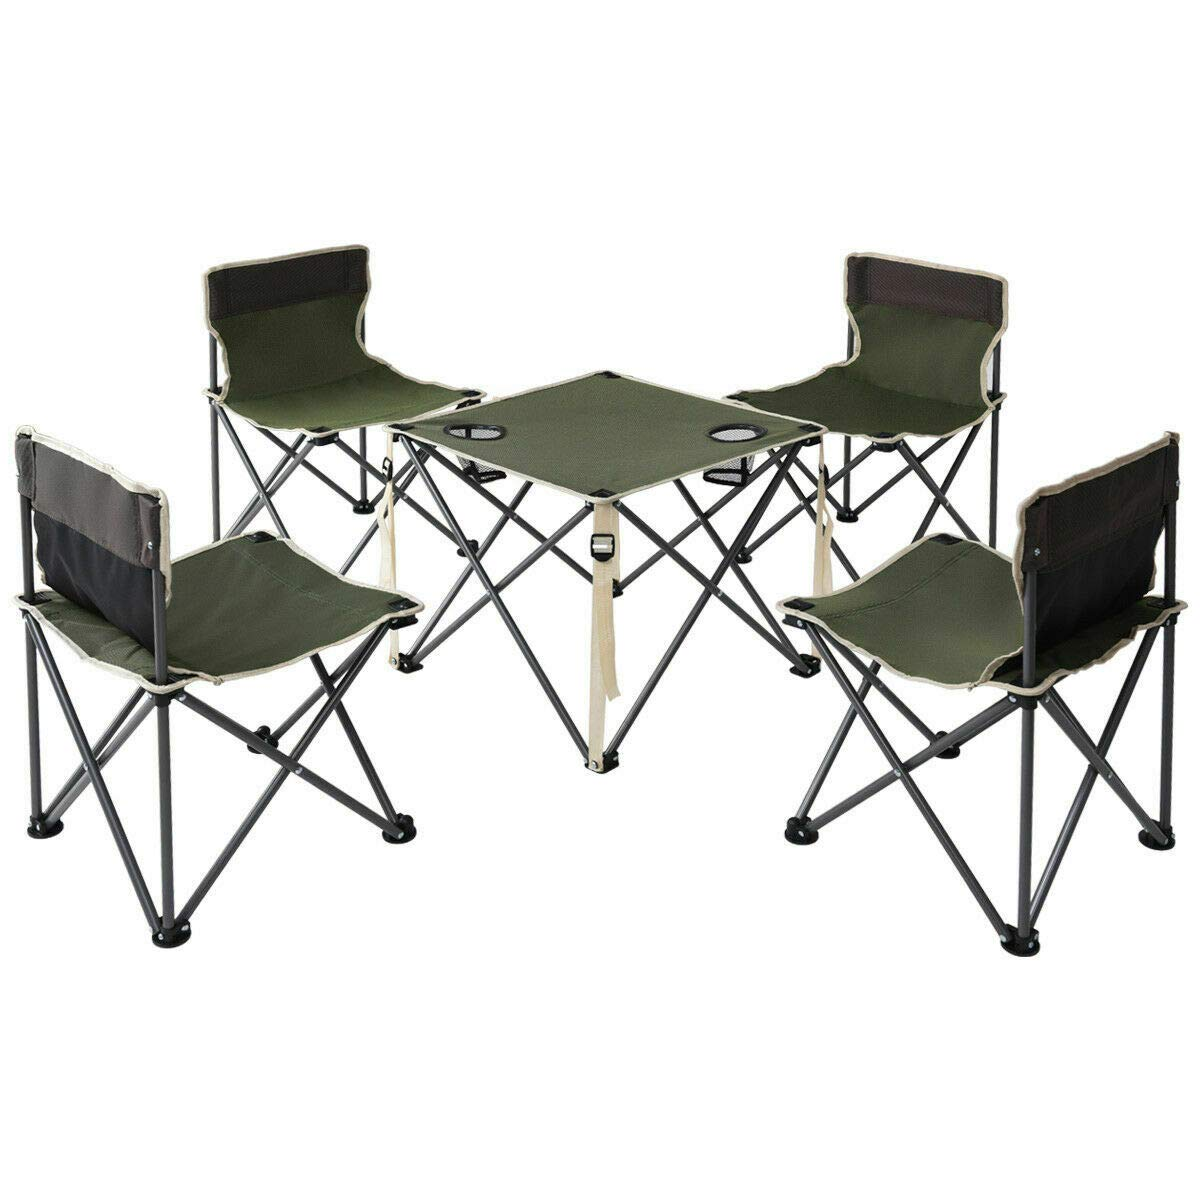 ANA Store Enjoy Barbecue Party Curl Stand Iron Stell Frame Green Oxford Portable Folding Table Chairs Set Inside Outside Camp Beach Picnic with Carrying Bag by ANA Store (Image #4)